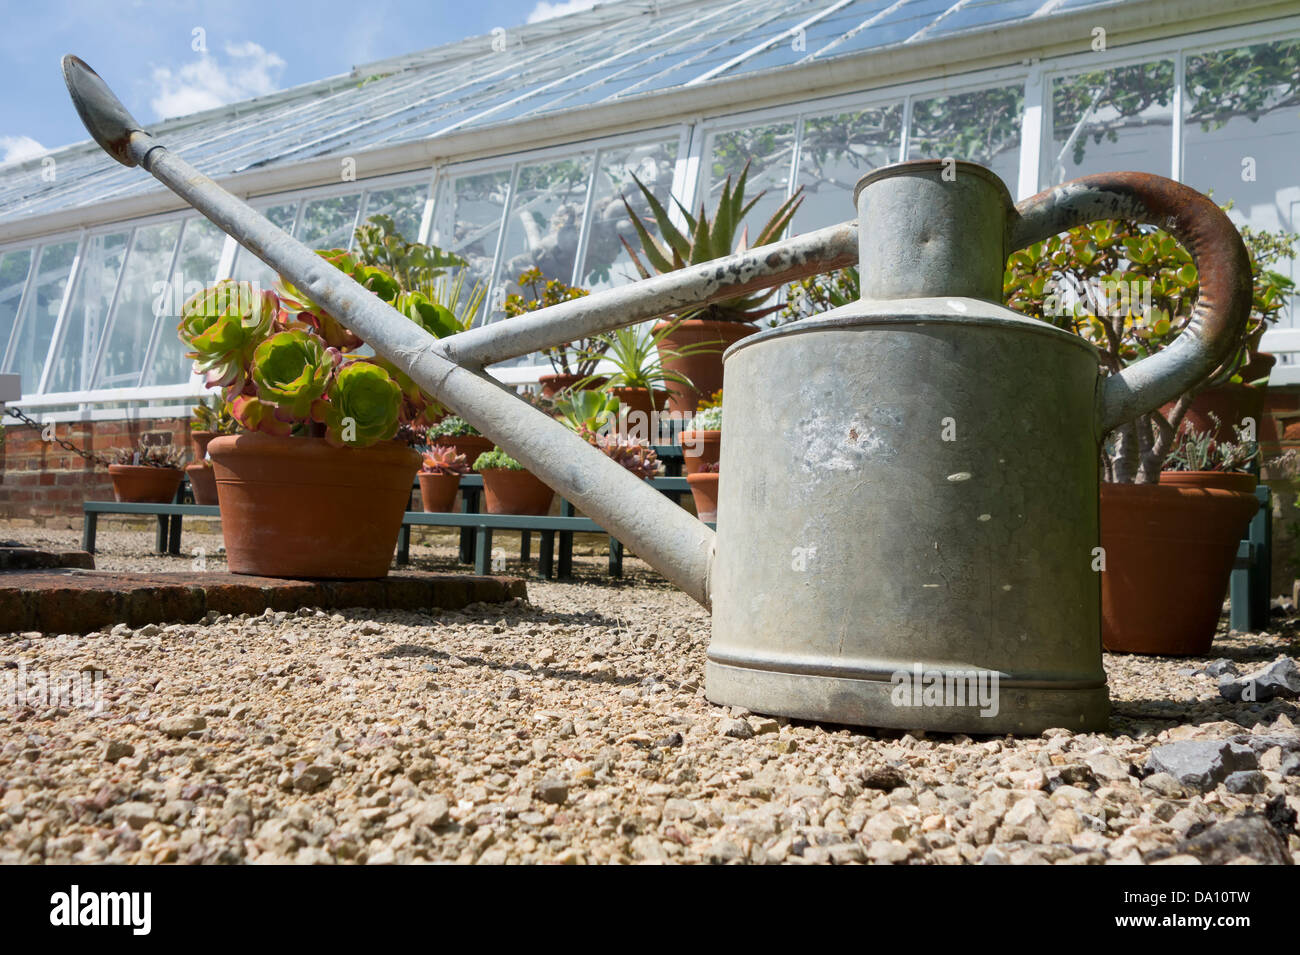 A galvanized watering can sat in front of some plants and greenhouses taken at a low wide angle to make it the dominant - Stock Image